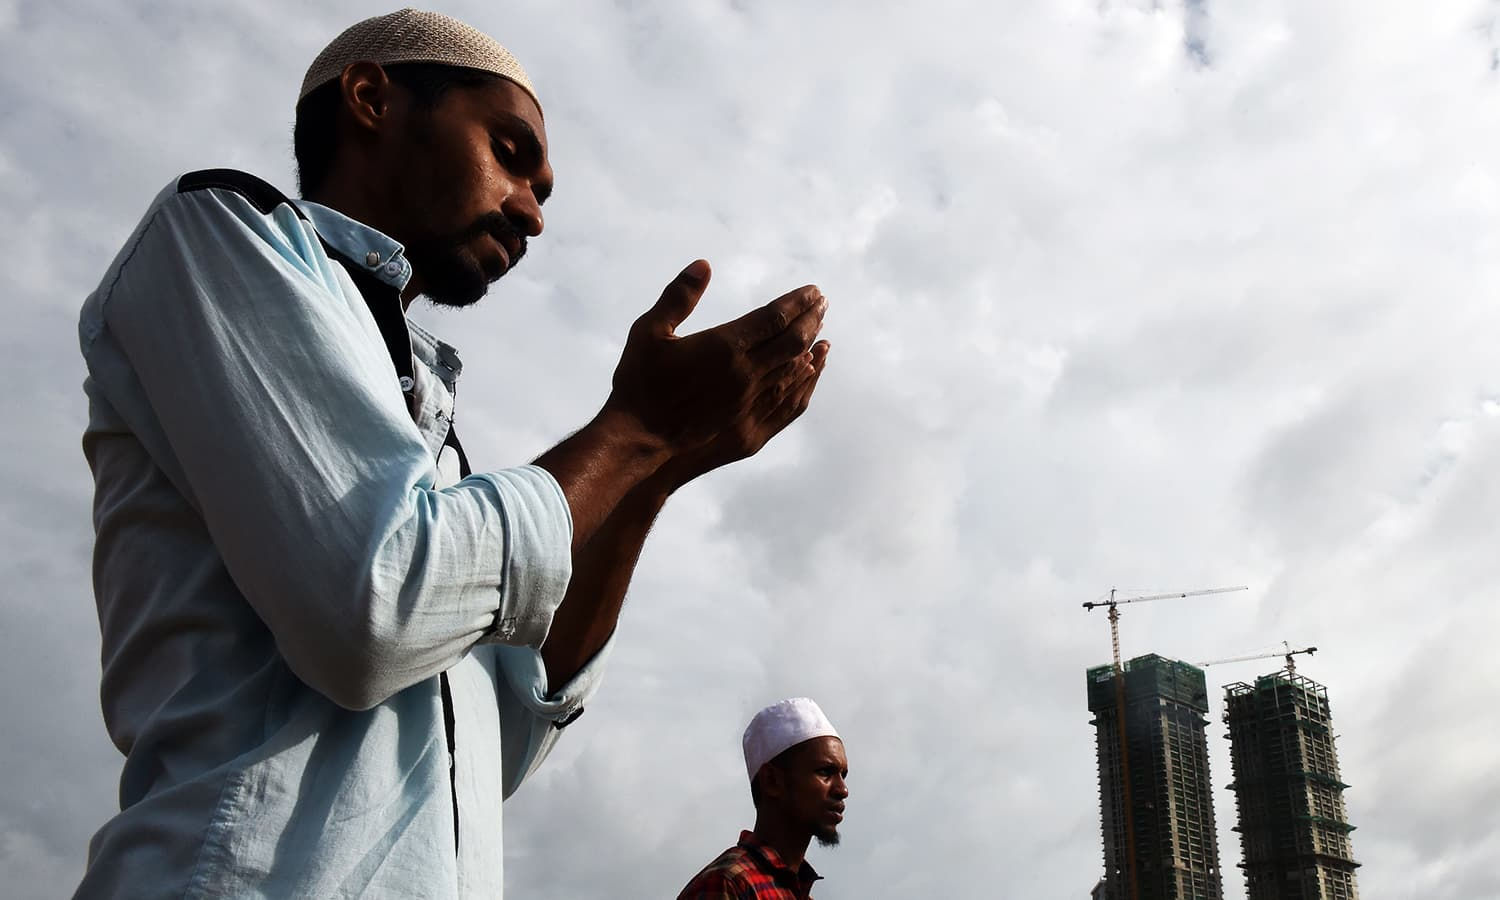 Sri Lankan Muslims offer Eid prayers at the Galle Face esplanade in Colombo. ─ AFP